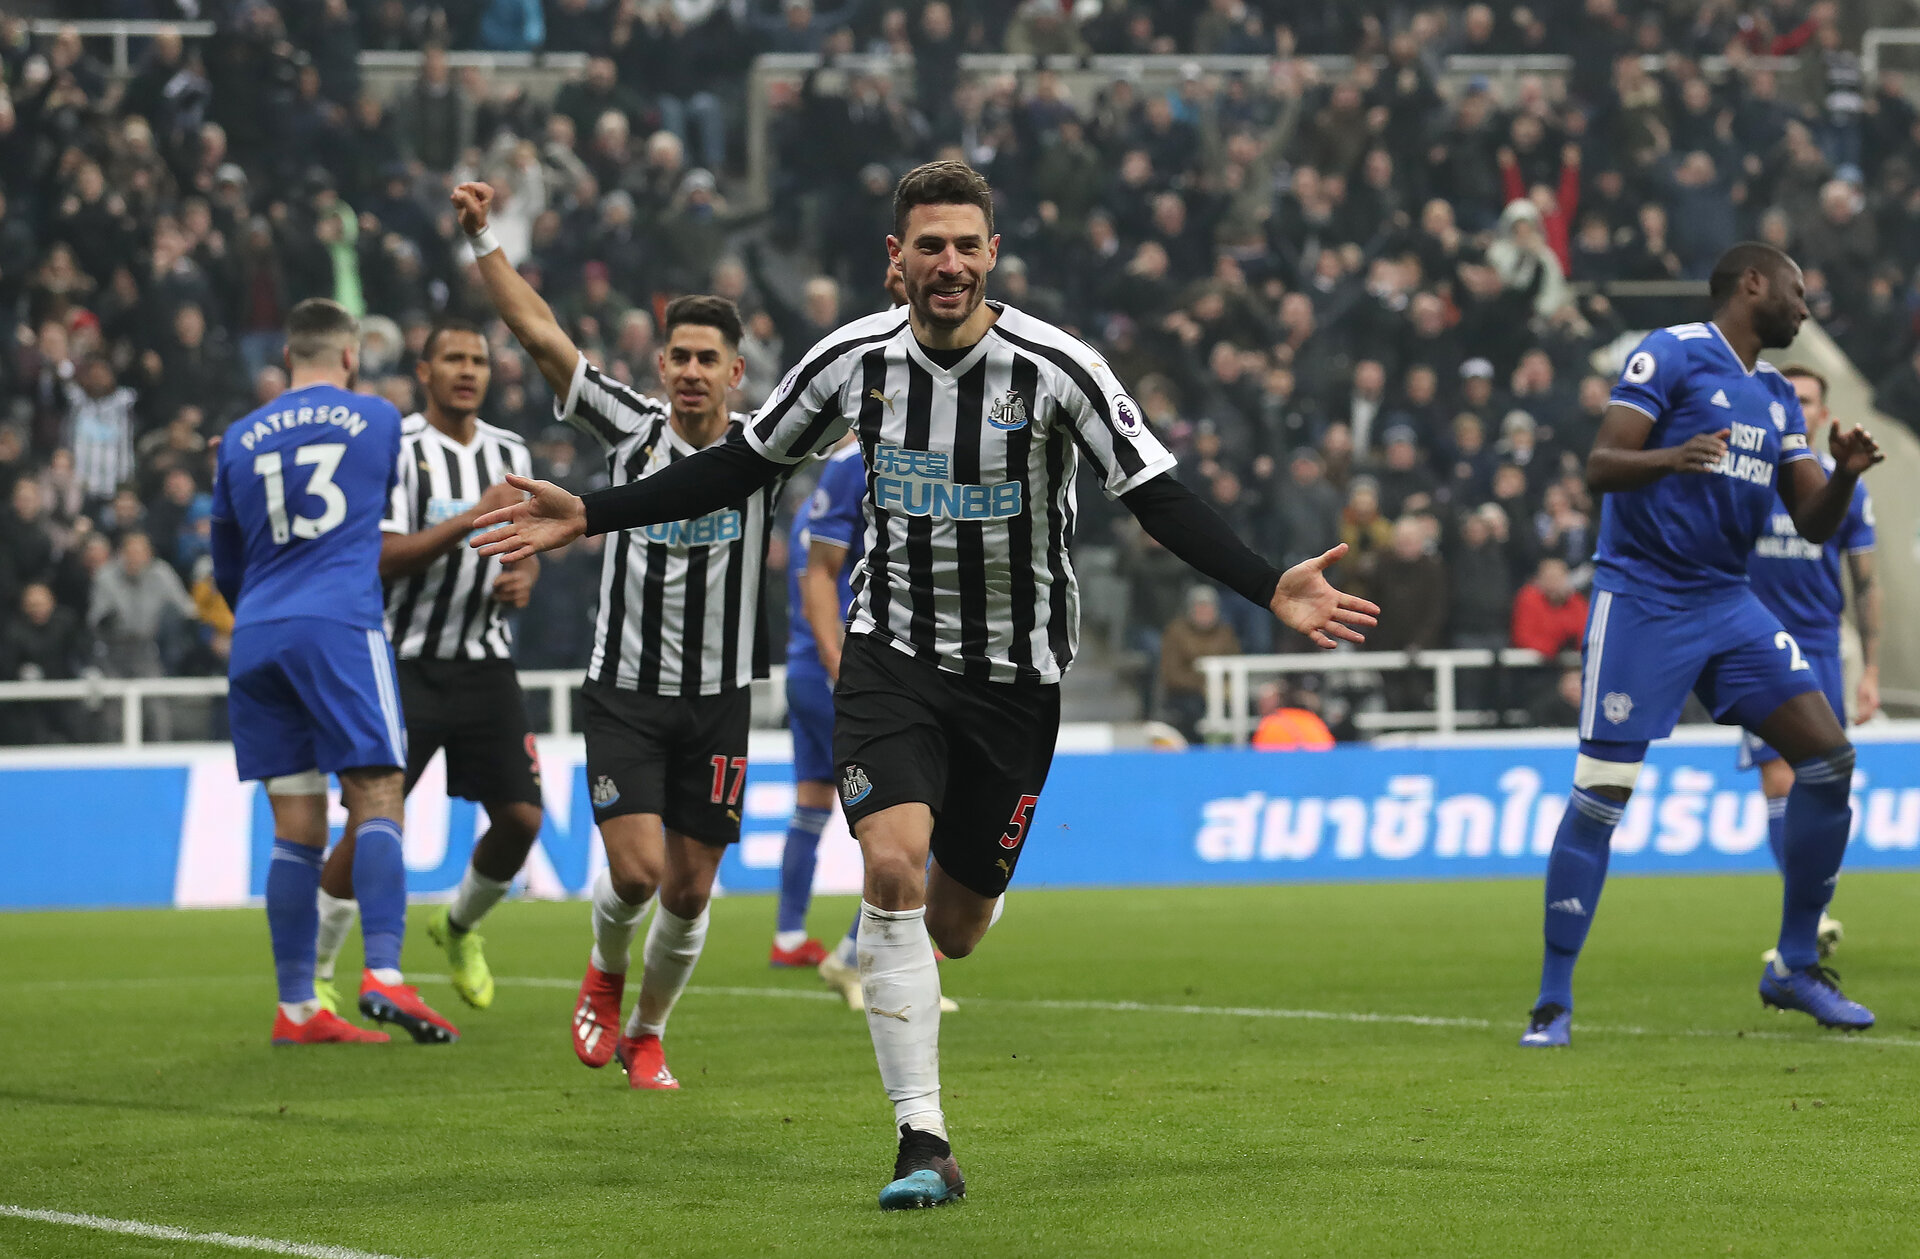 NEWCASTLE UPON TYNE, ENGLAND - JANUARY 19: Fabian Schar of Newcastle United celebrates after he scores his sides third goal during the Premier League match between Newcastle United and Cardiff City at St. James Park on January 19, 2019 in Newcastle upon Tyne, United Kingdom. (Photo by Ian MacNicol/Getty Images)